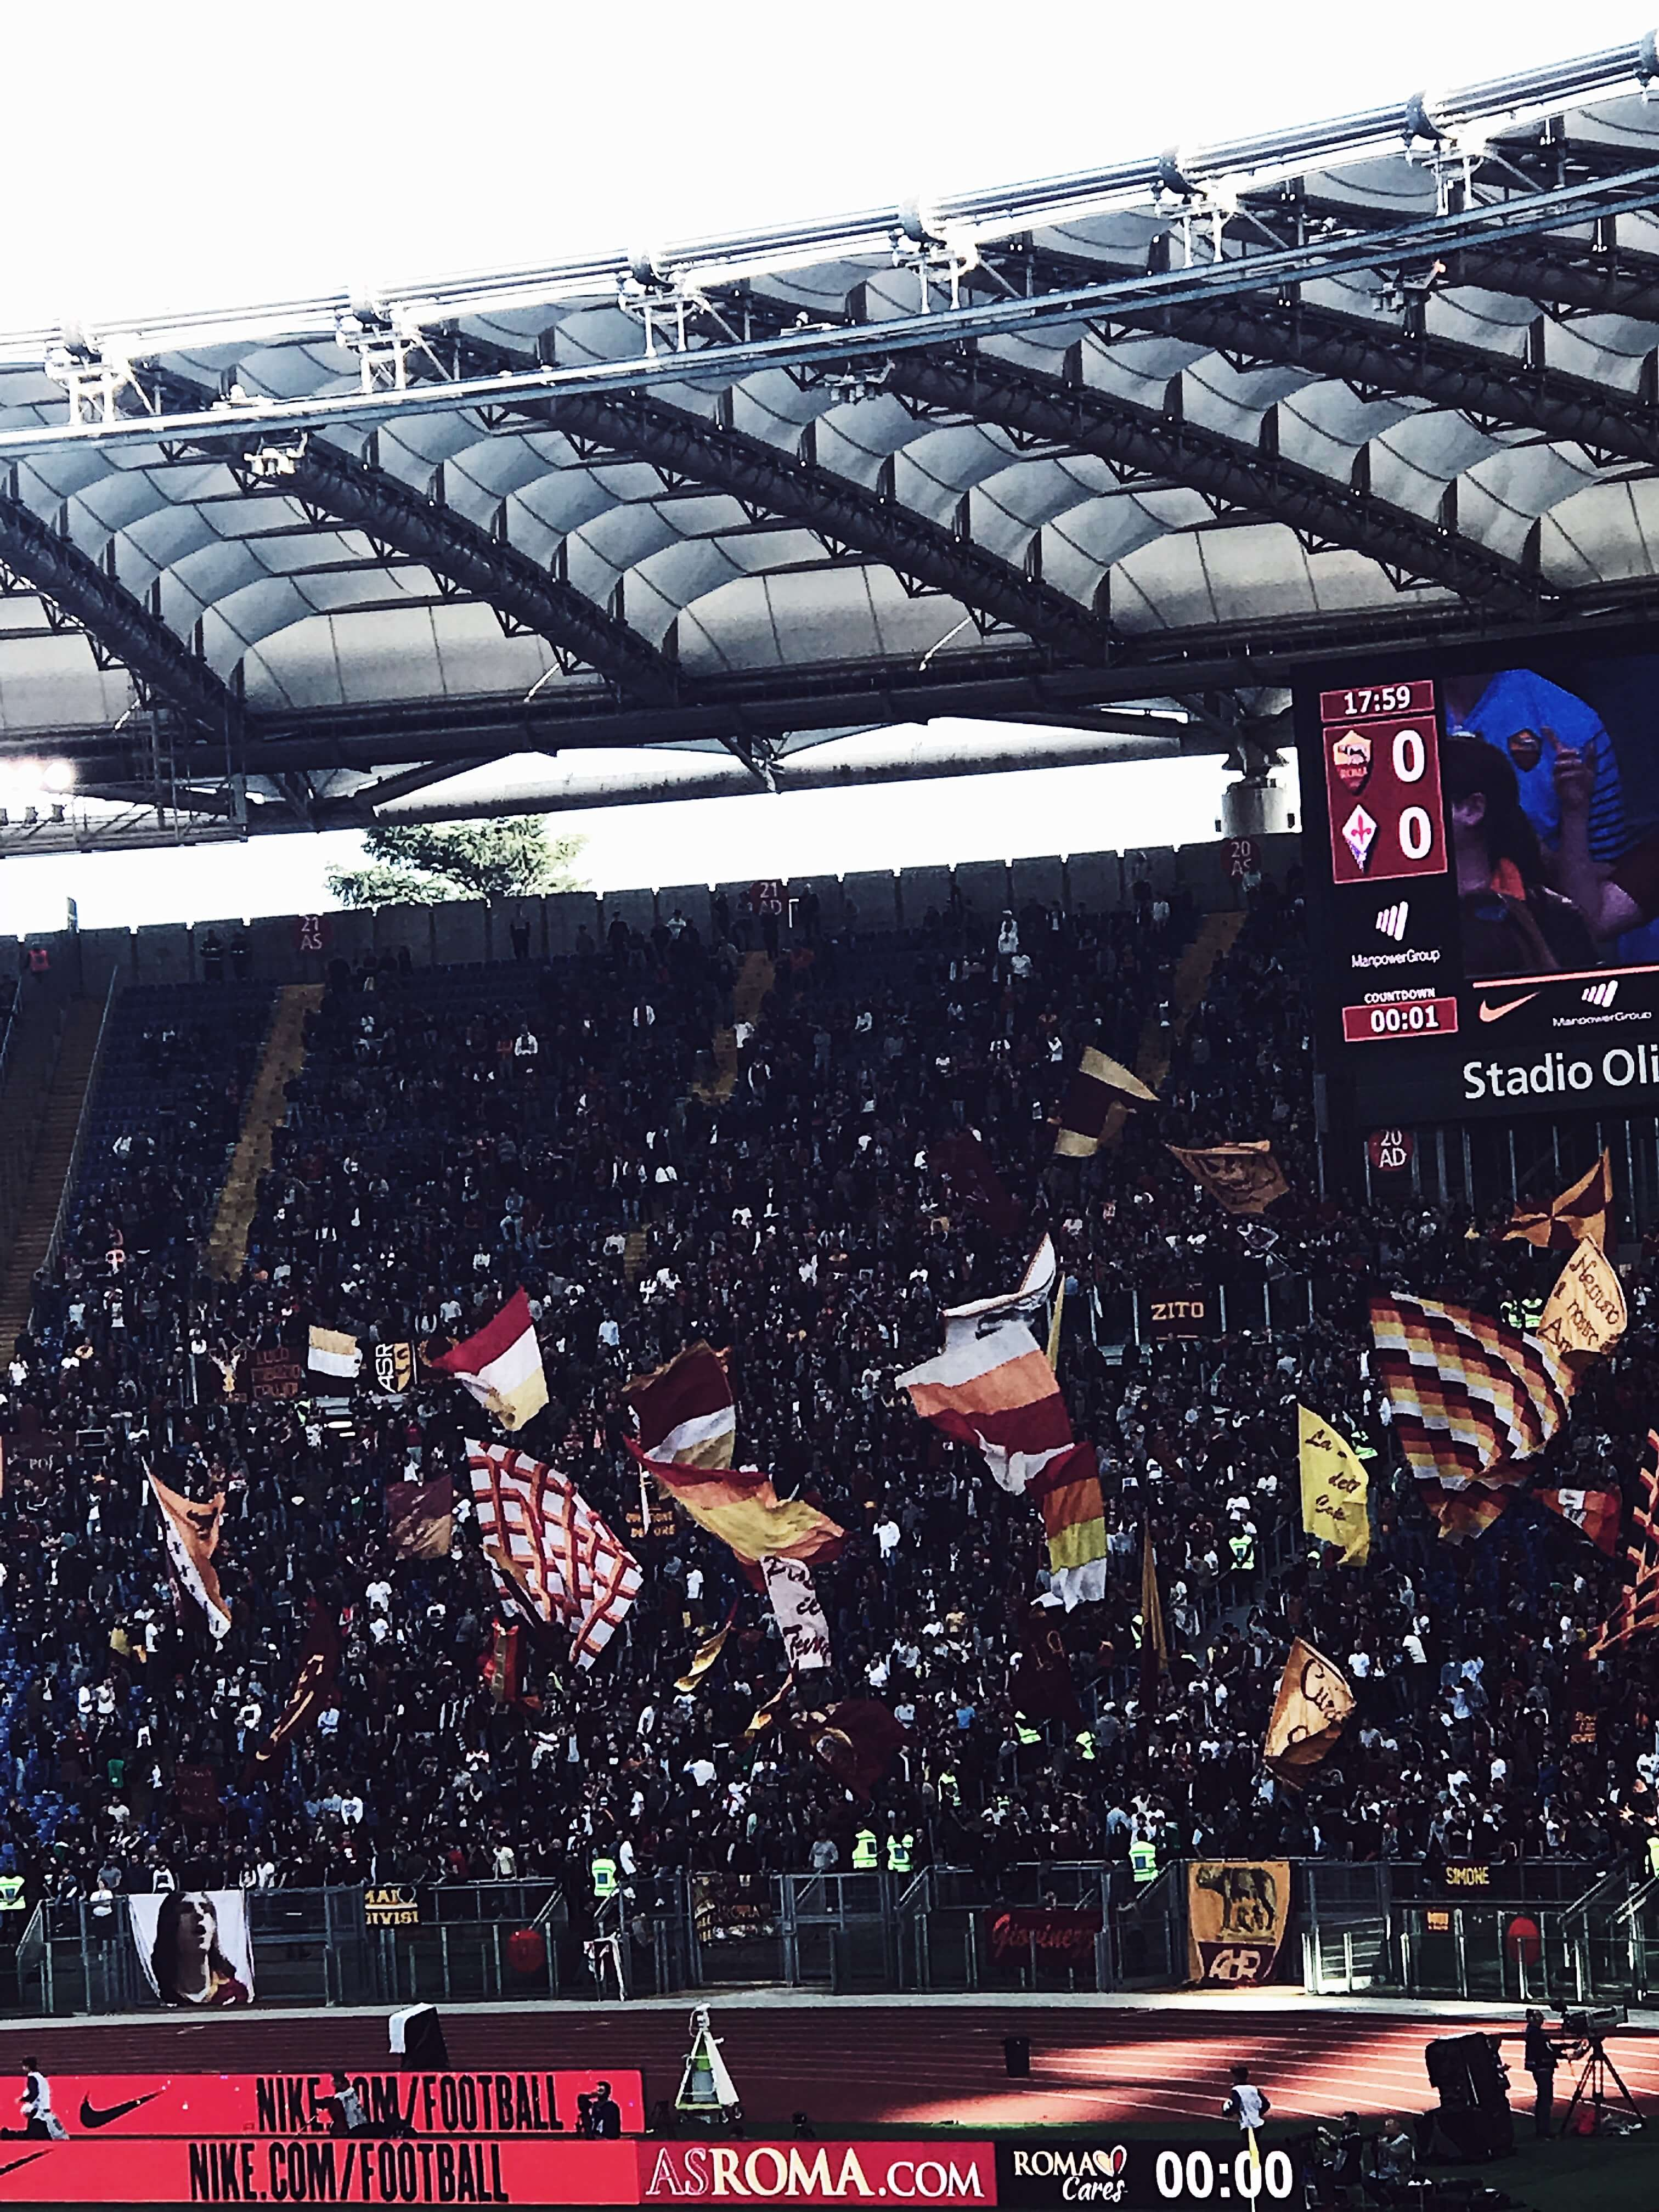 Italian football culture article